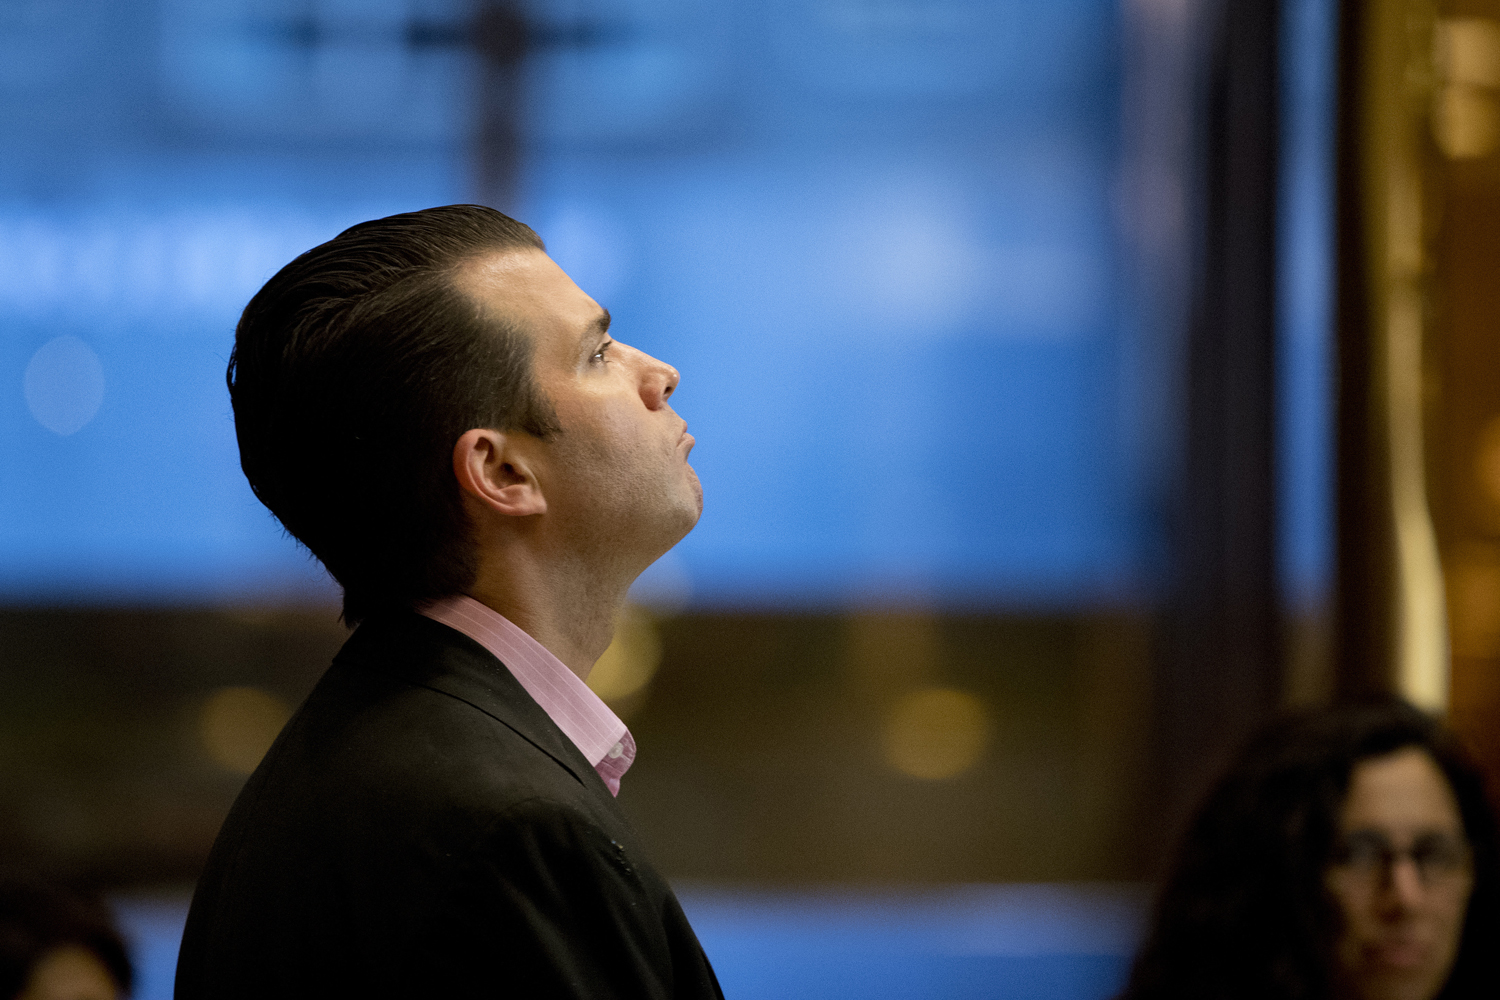 Donald Trump Jr., son of President-elect Donald Trump waits for an elevator at Trump Tower, Tuesday, Nov. 15, 2016 in New York. AP Photo/Carolyn Kaster)